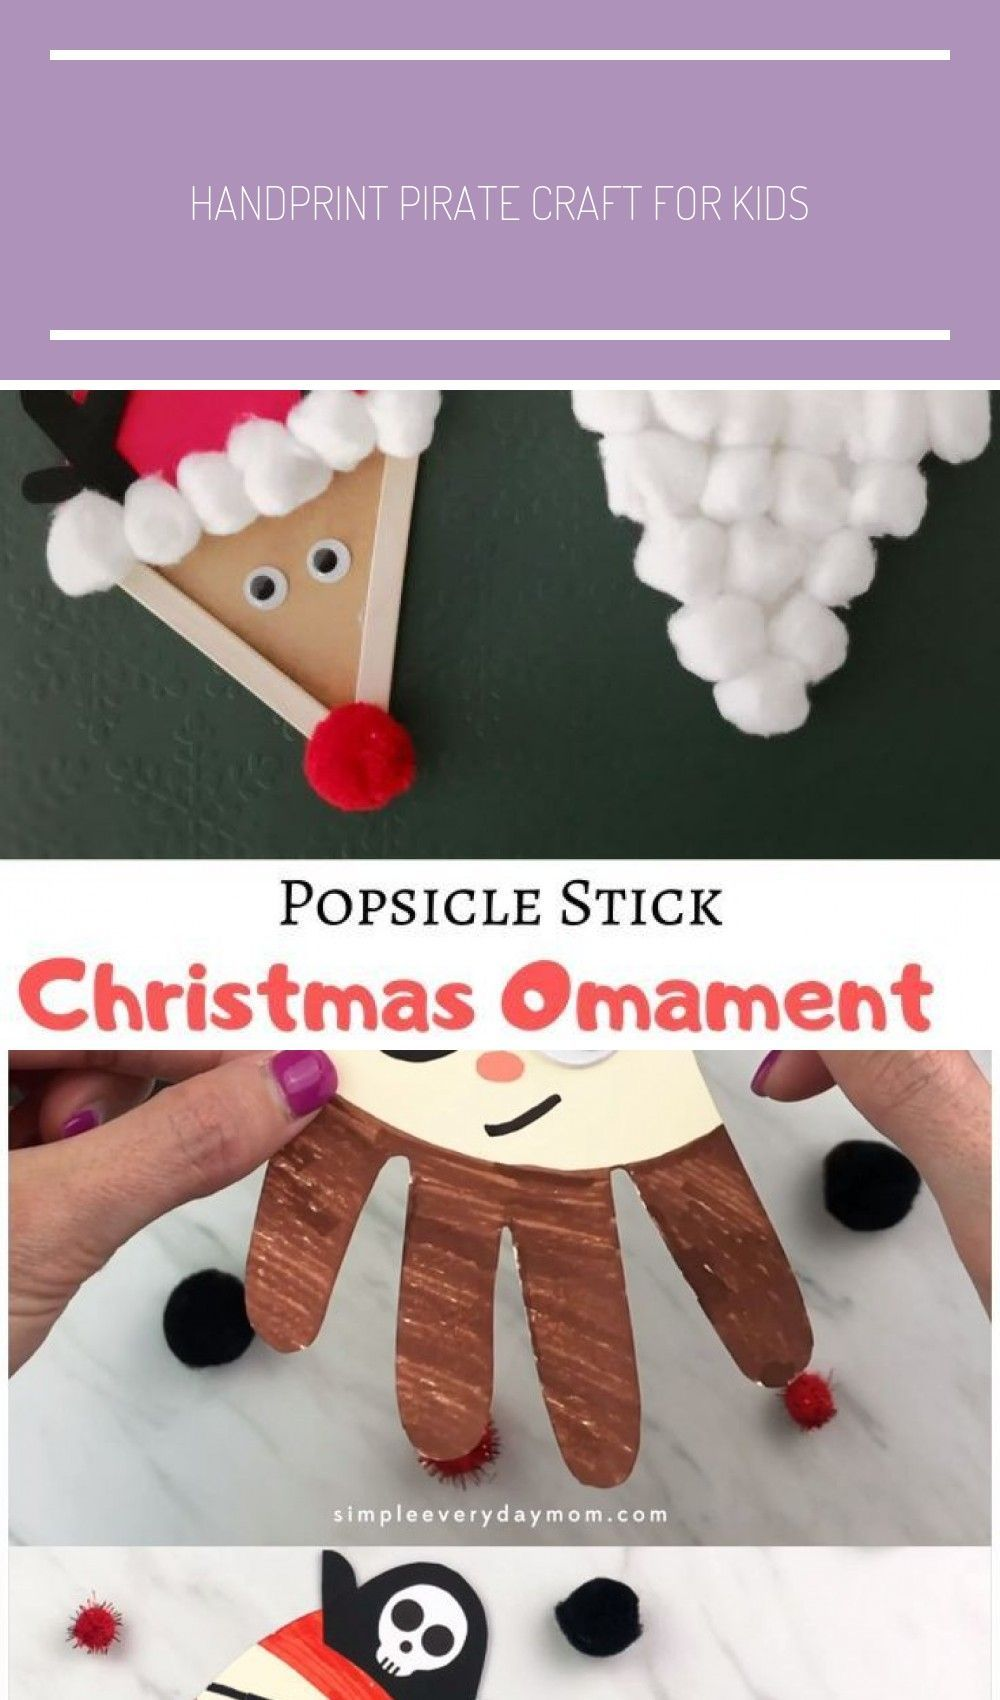 Are you looking for easy Christmas crafts for kids to make with popsicle sticks?... ,  #Christmas #crafts #easy #Kids #Popsicle #reindeercraftsforkidschristmas #sticks